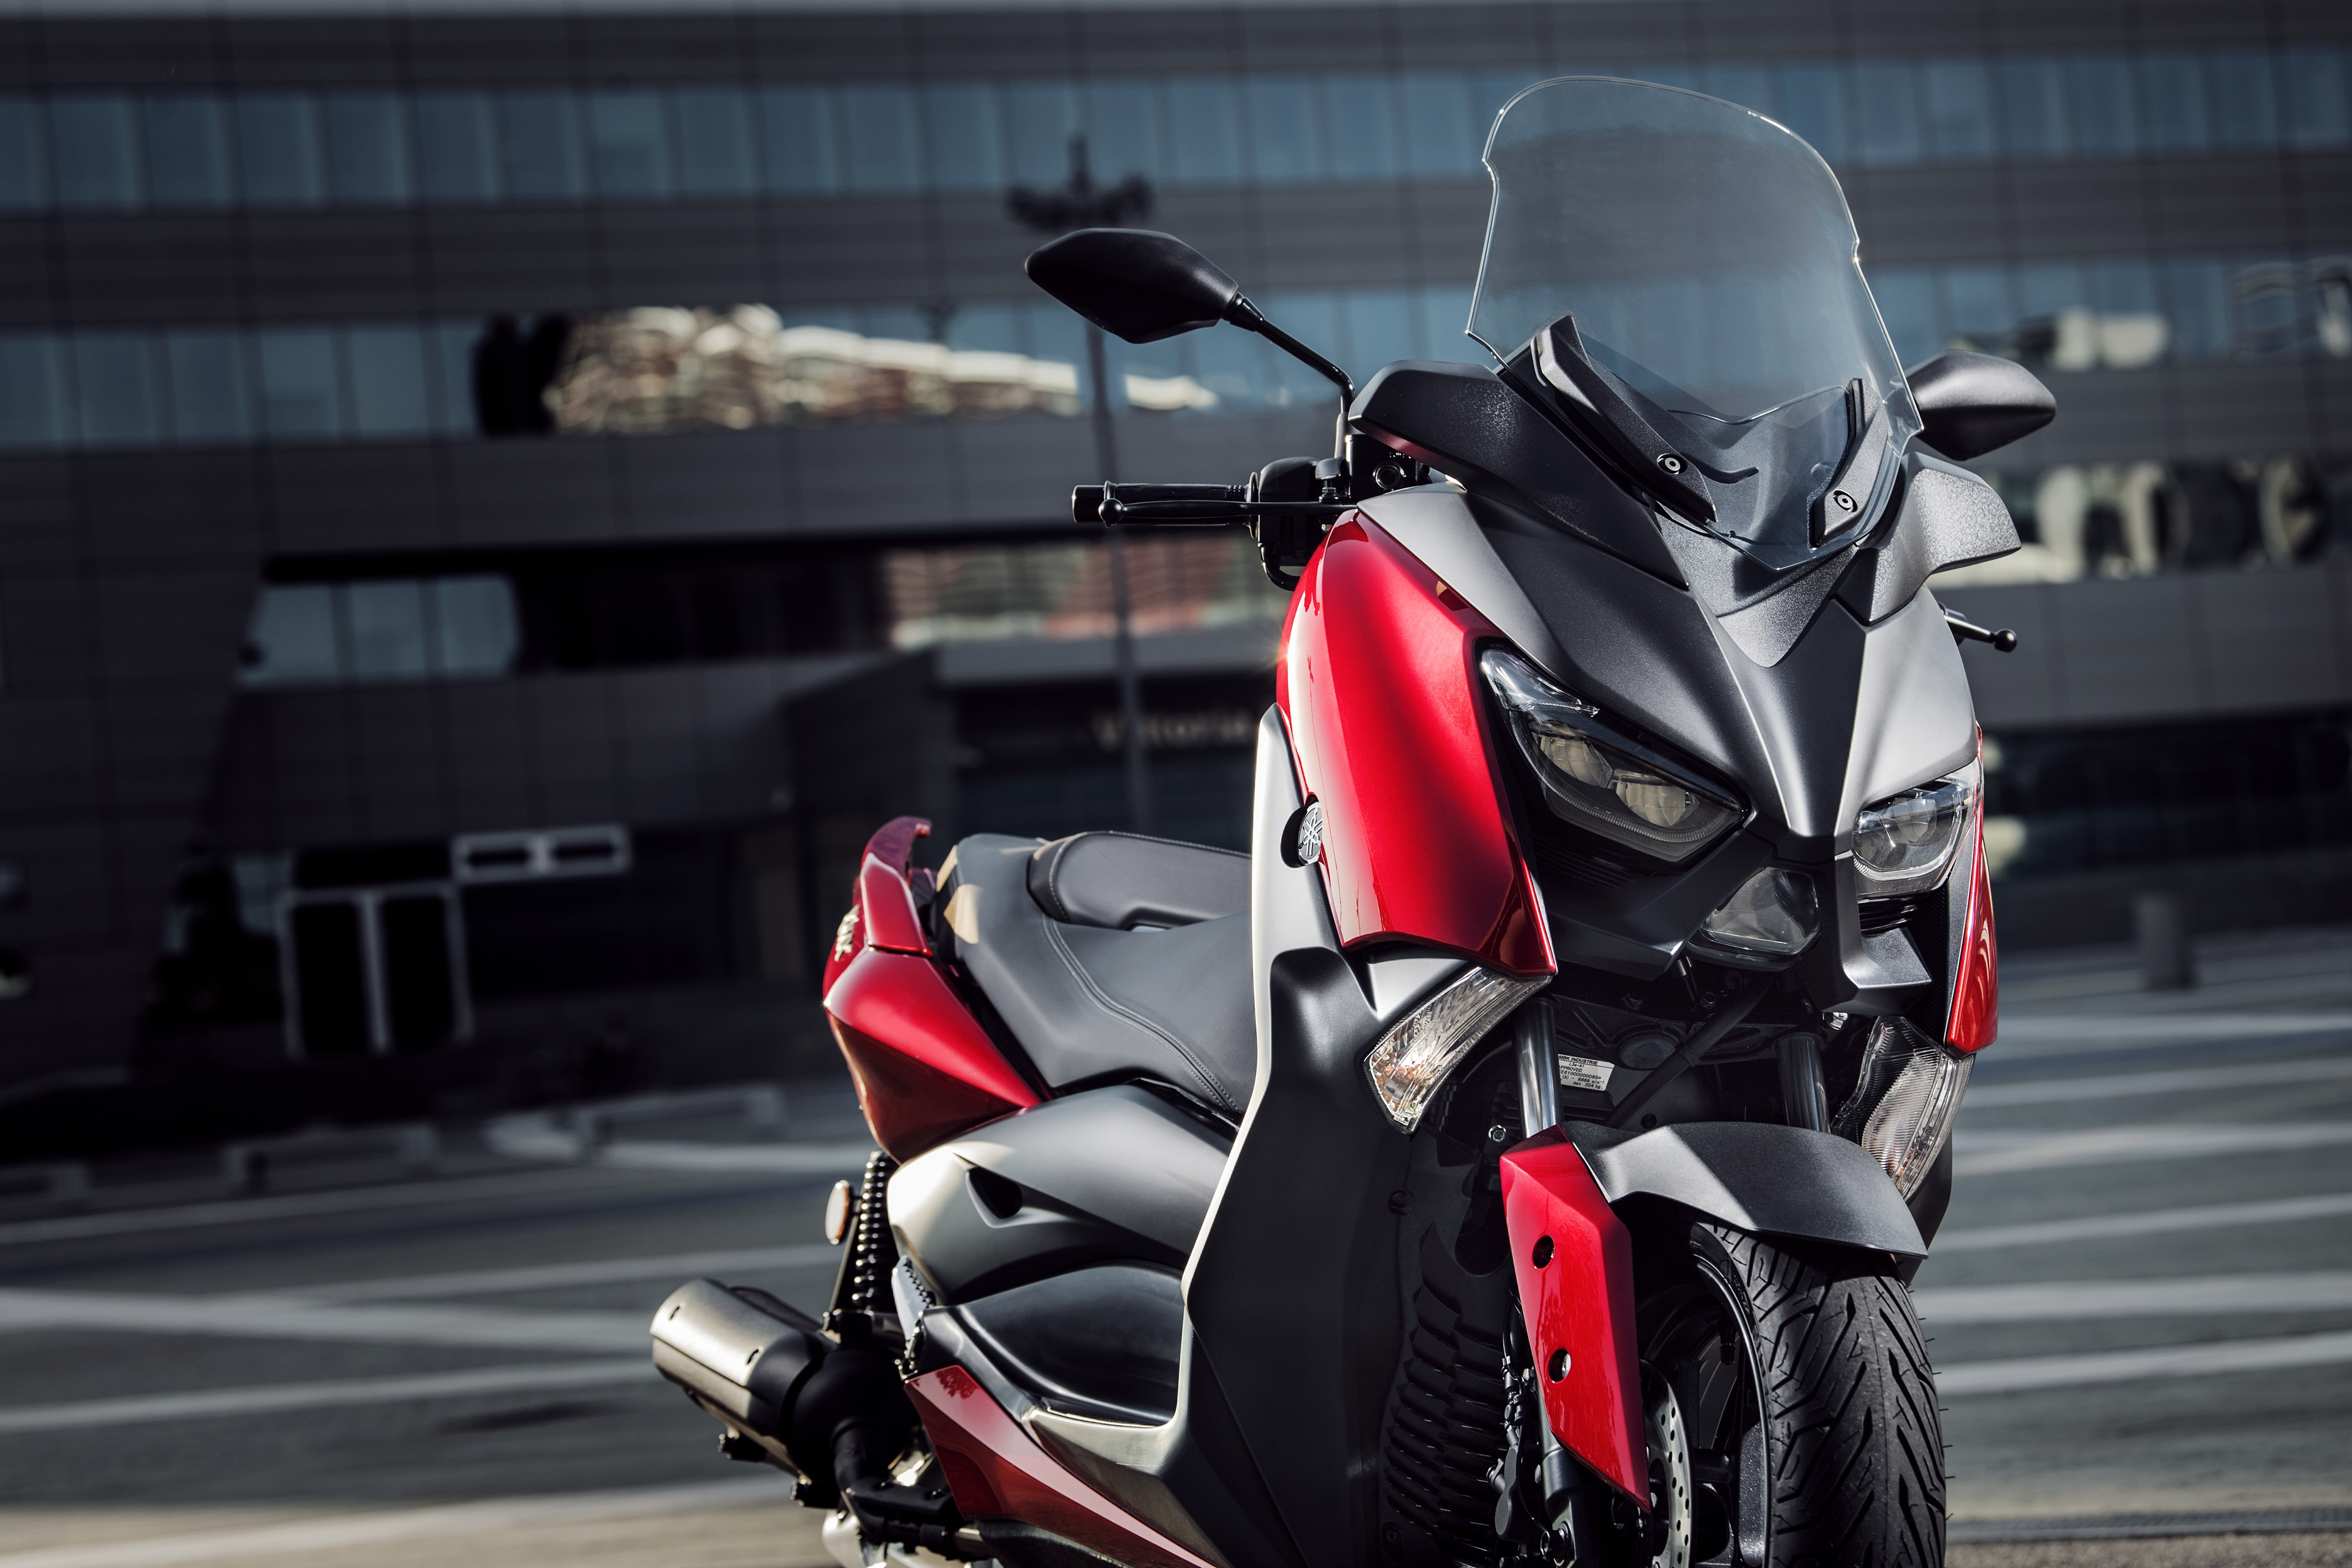 2018 yamaha x max 125 scooter released in europe image 709944. Black Bedroom Furniture Sets. Home Design Ideas